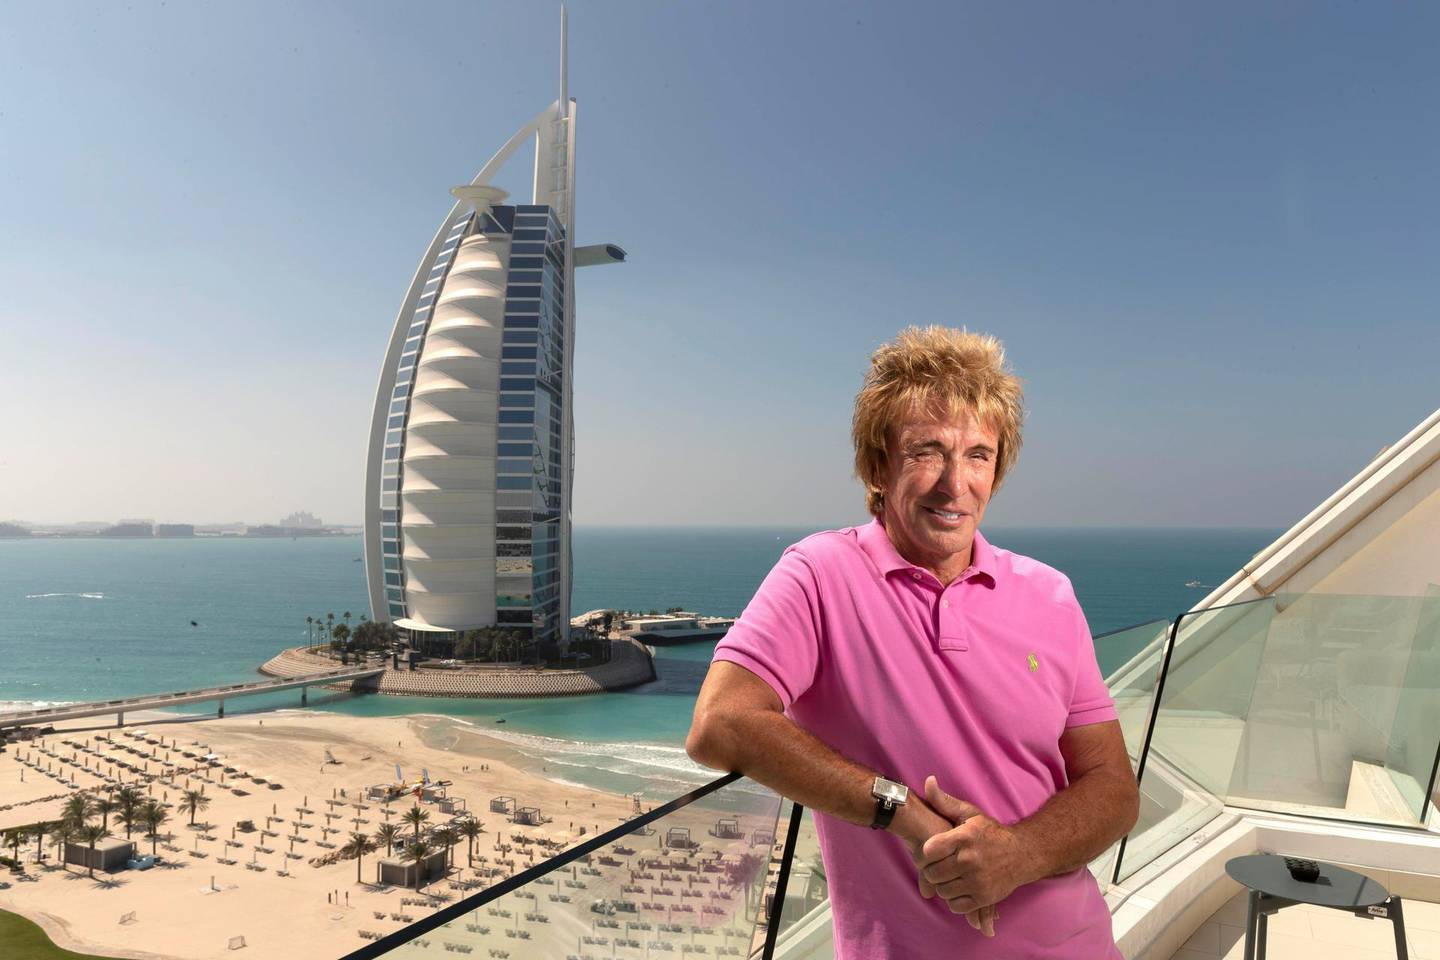 DUBAI, UNITED ARAB EMIRATES. 08 MARCH 2021. British millionaire plumber, Charlie Mullins, has started a new business venture in Dubai. (Photo: Antonie Robertson/The National) Journalist: Kelly Clarke. Section: National.